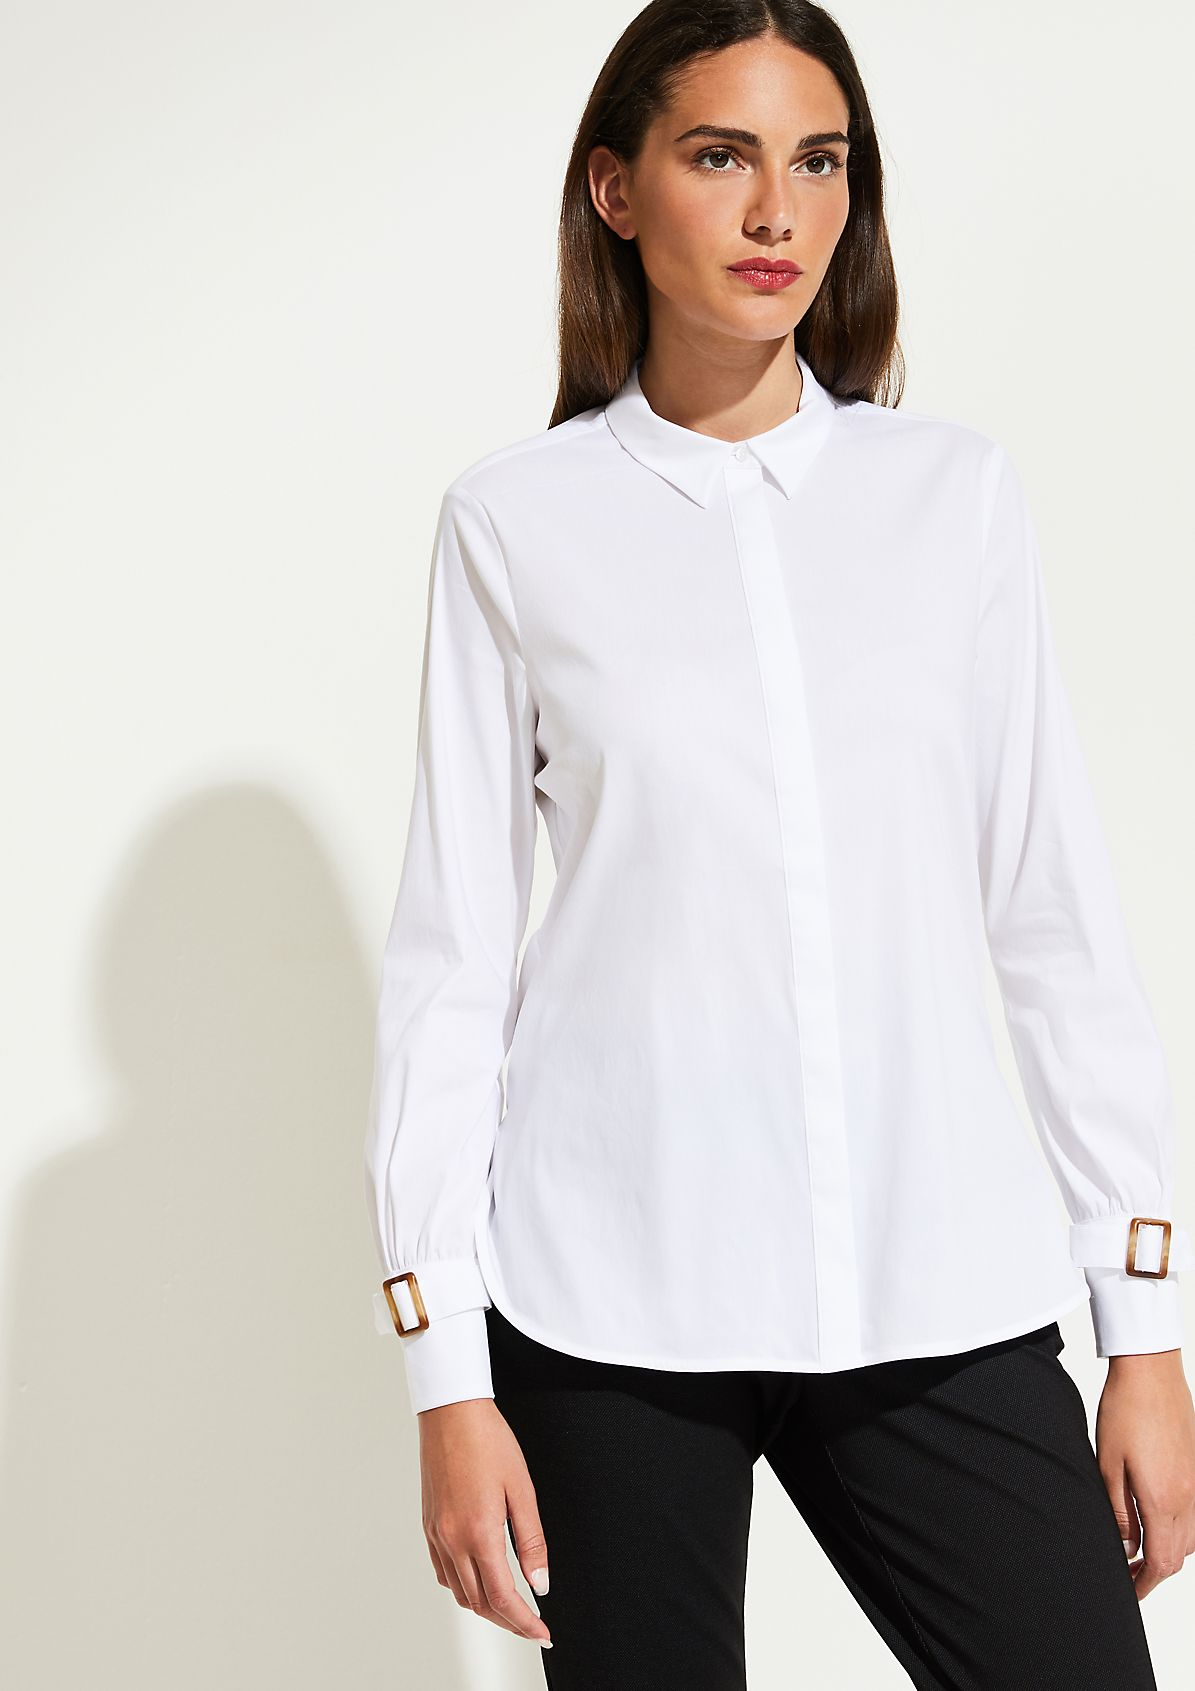 Classic business blouse with smart details from comma